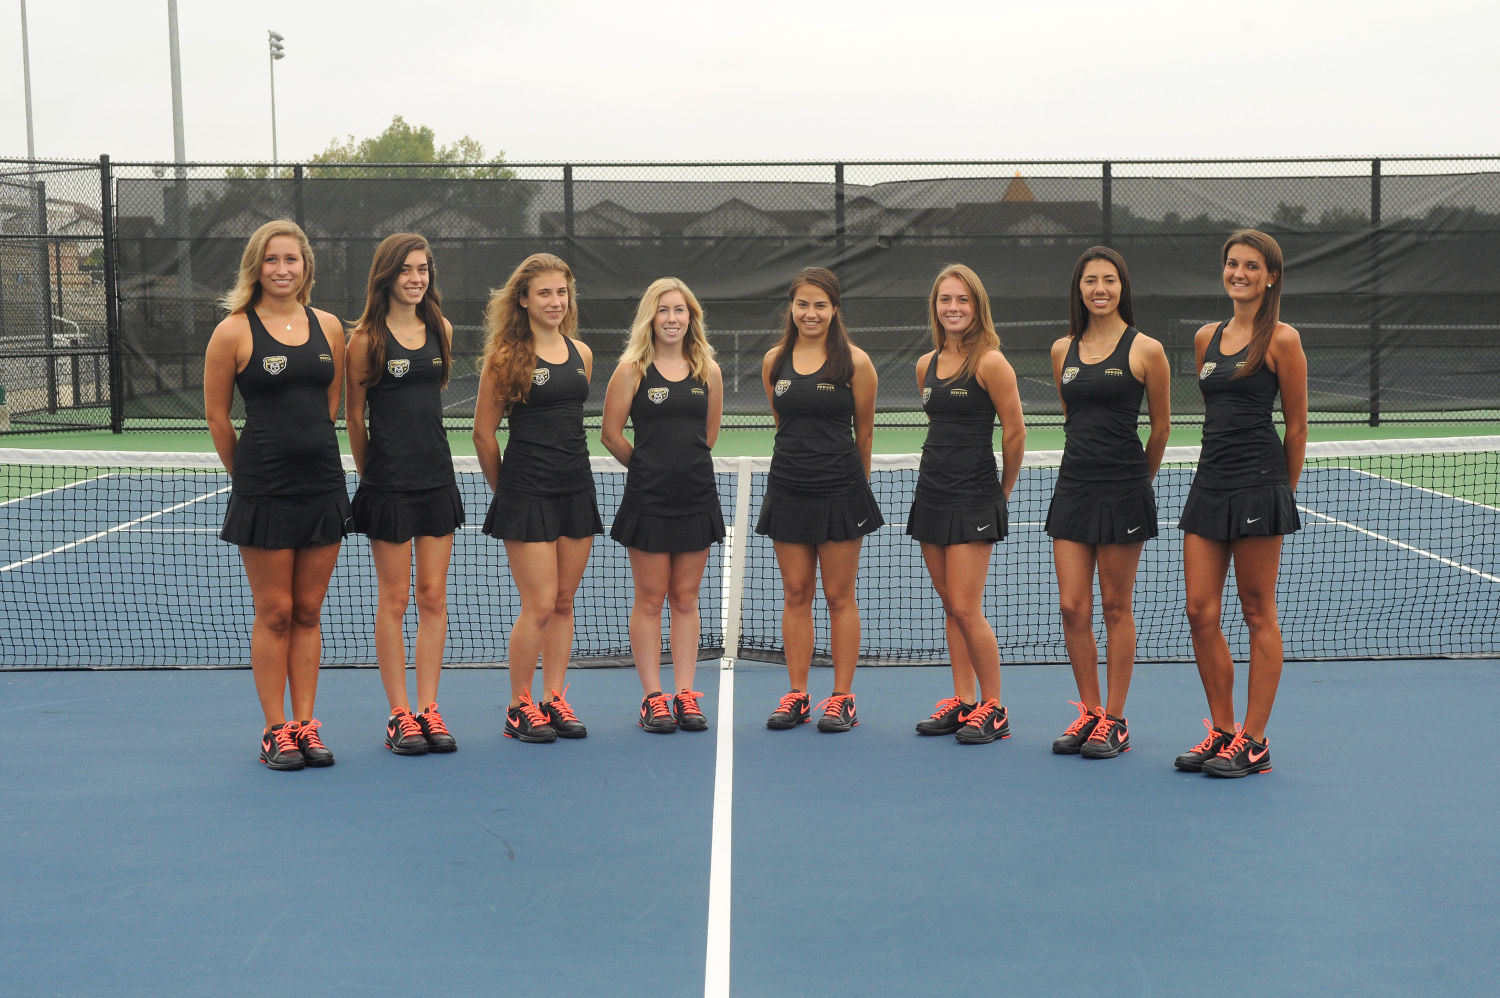 Tennis team will begin its first league math of the 2016 season on March 26, and its first home match on April 2.